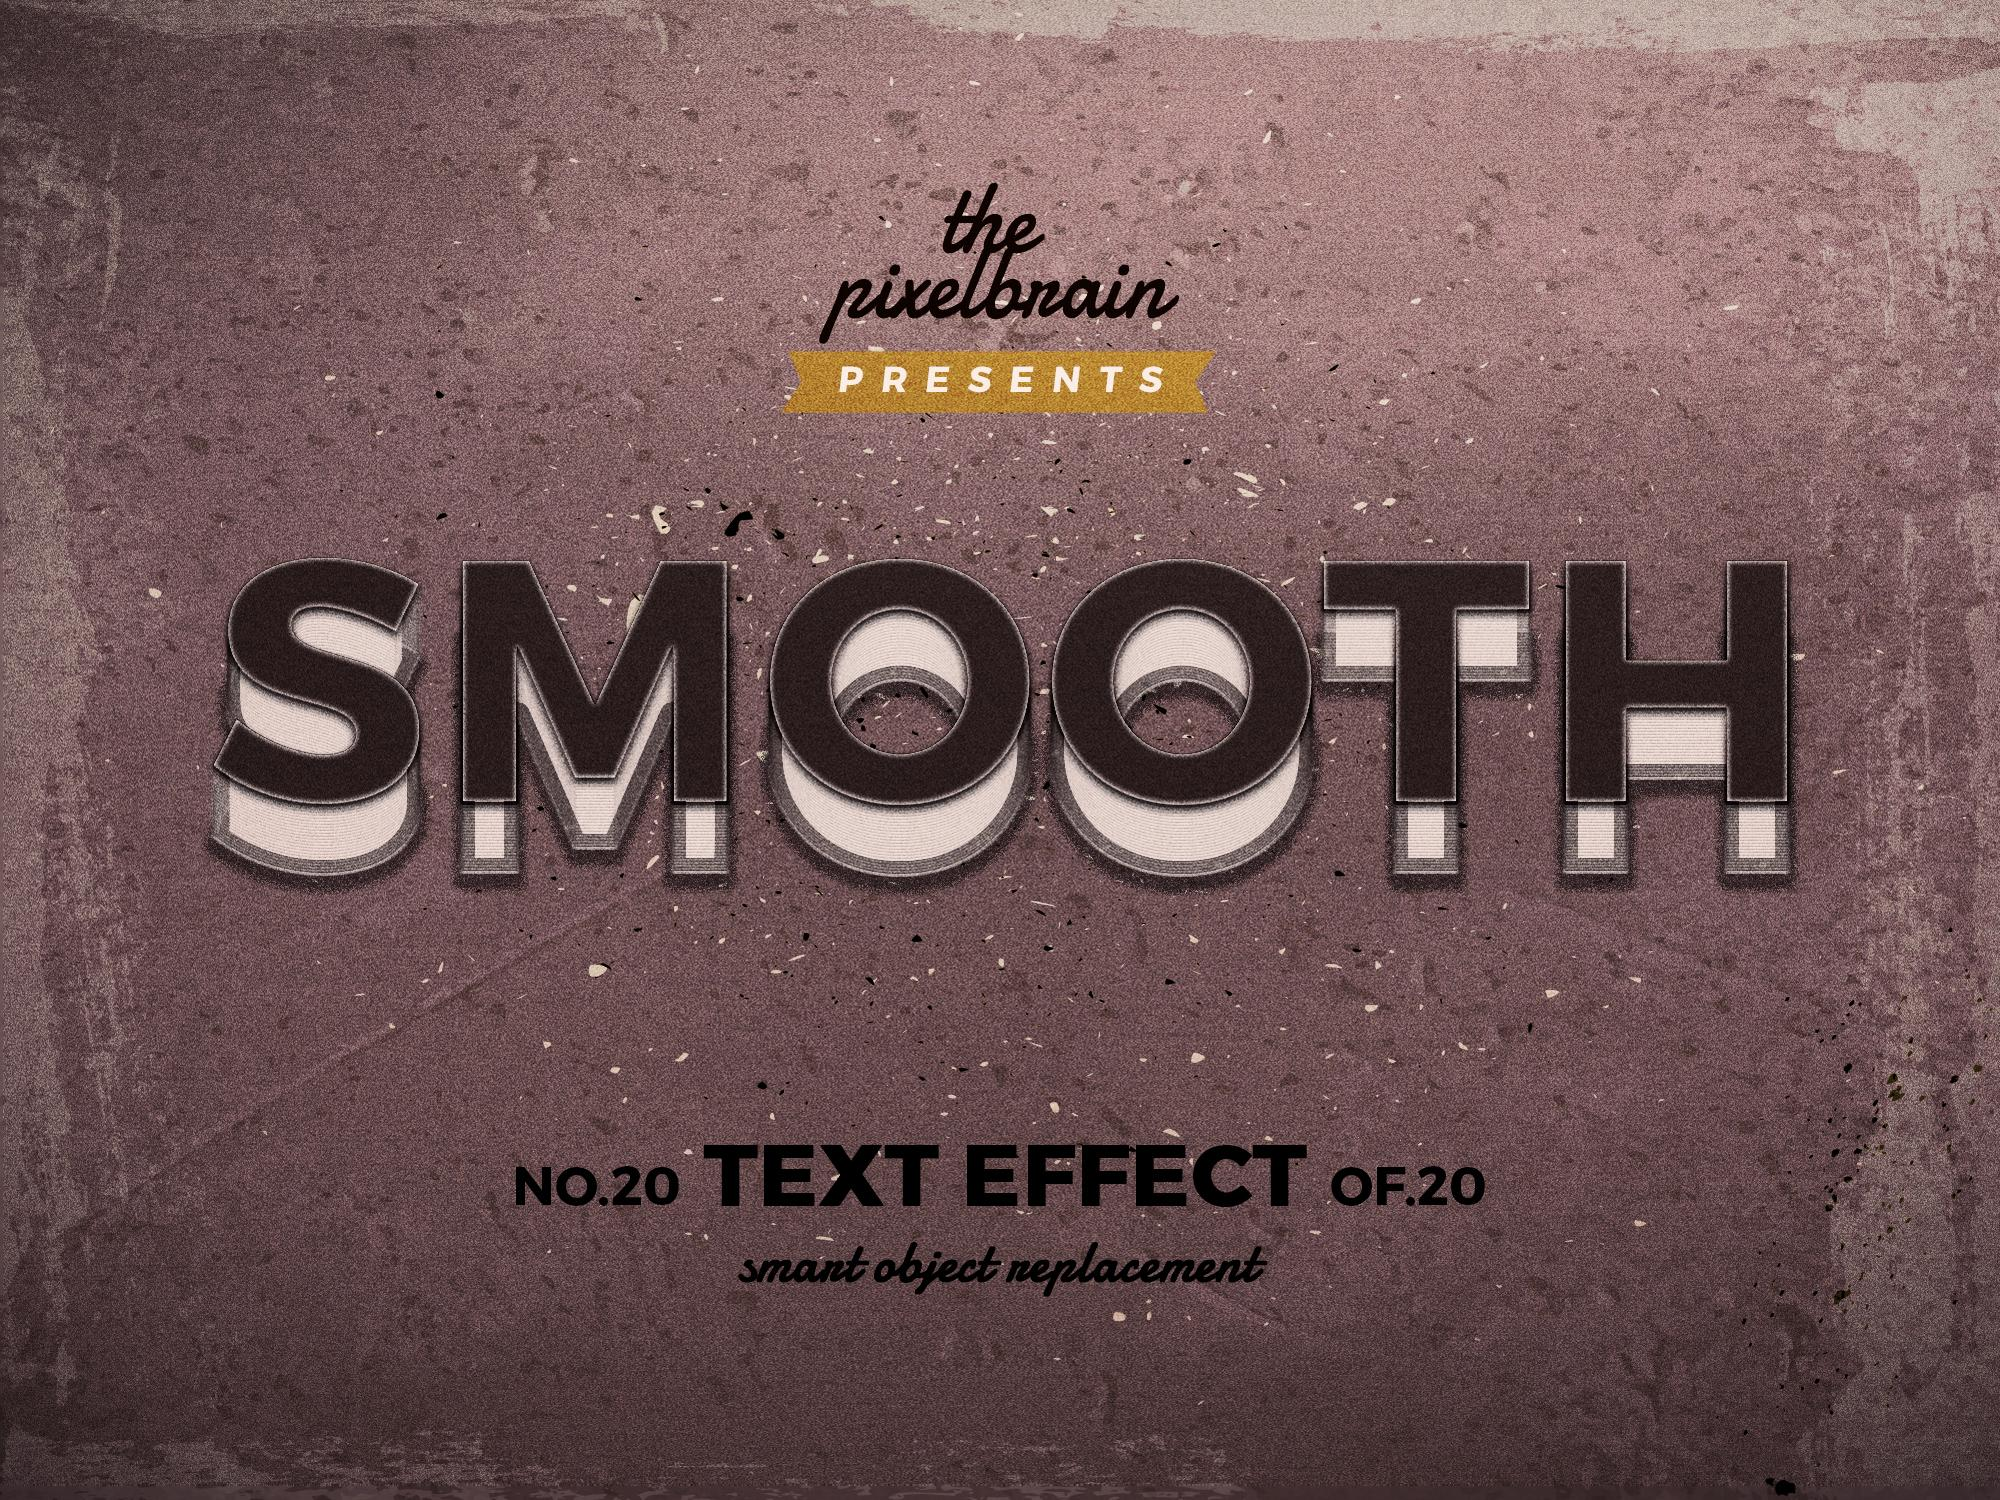 Chia sẻ bộ Retro Vintage Text Effects 10